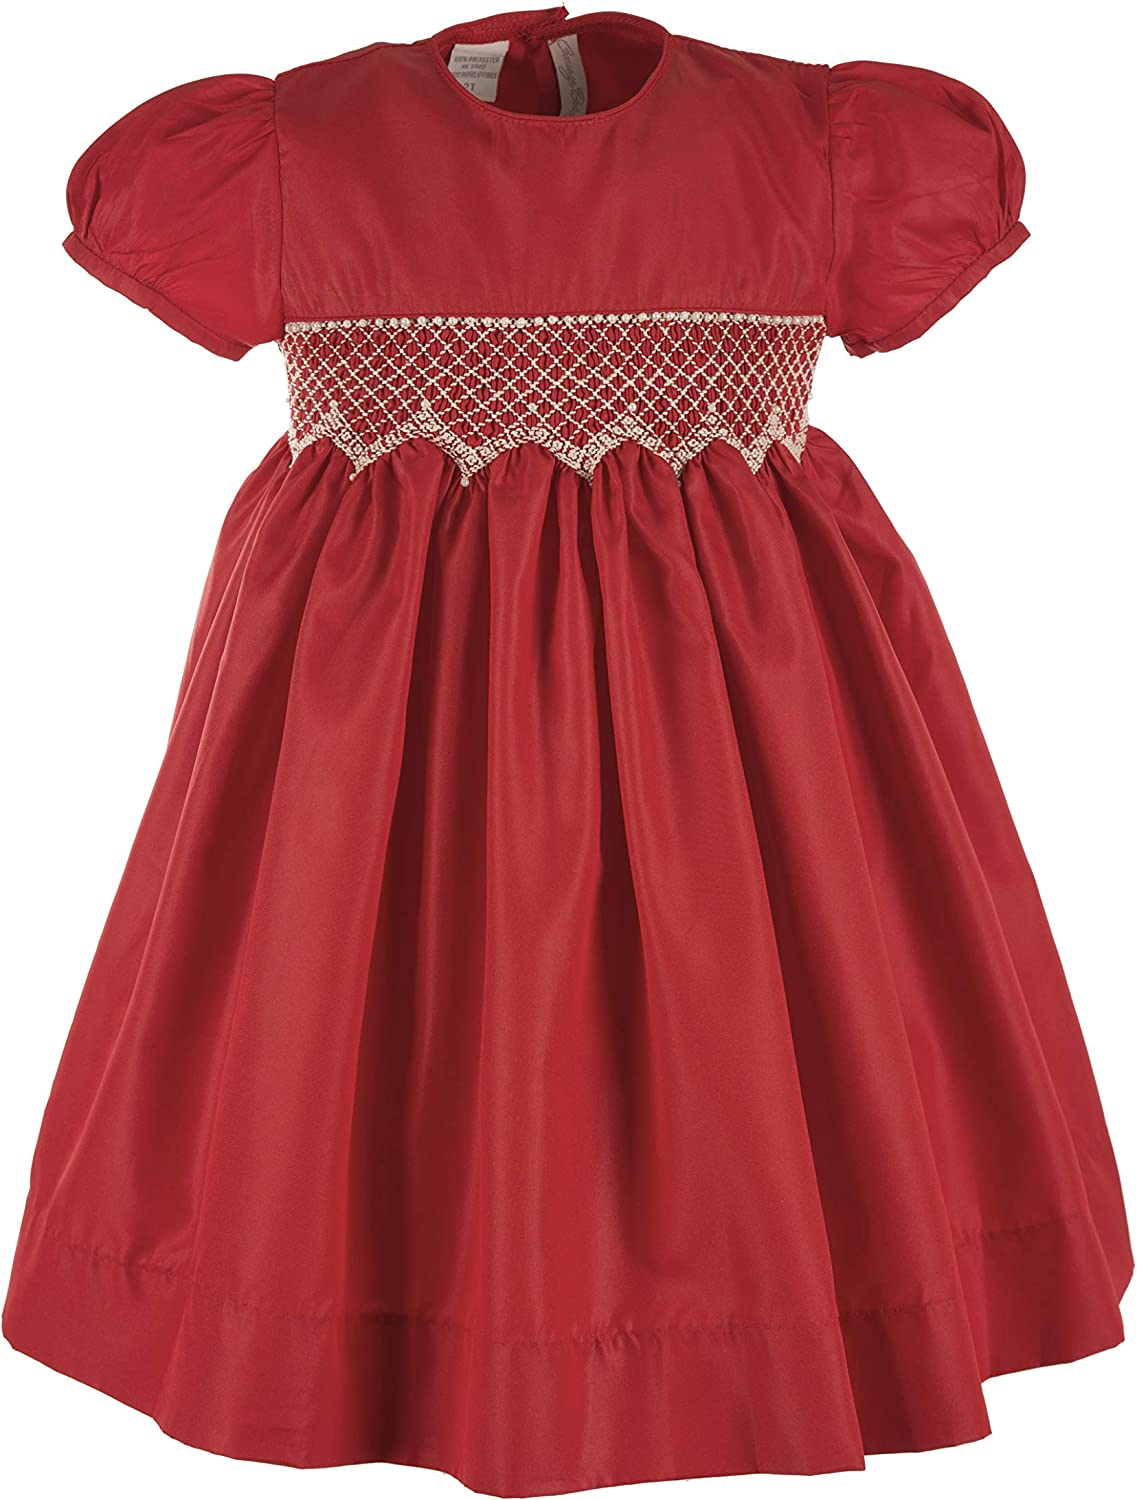 Carriage Boutique Girls Red Christmas Holiday Dress Hand Smocked